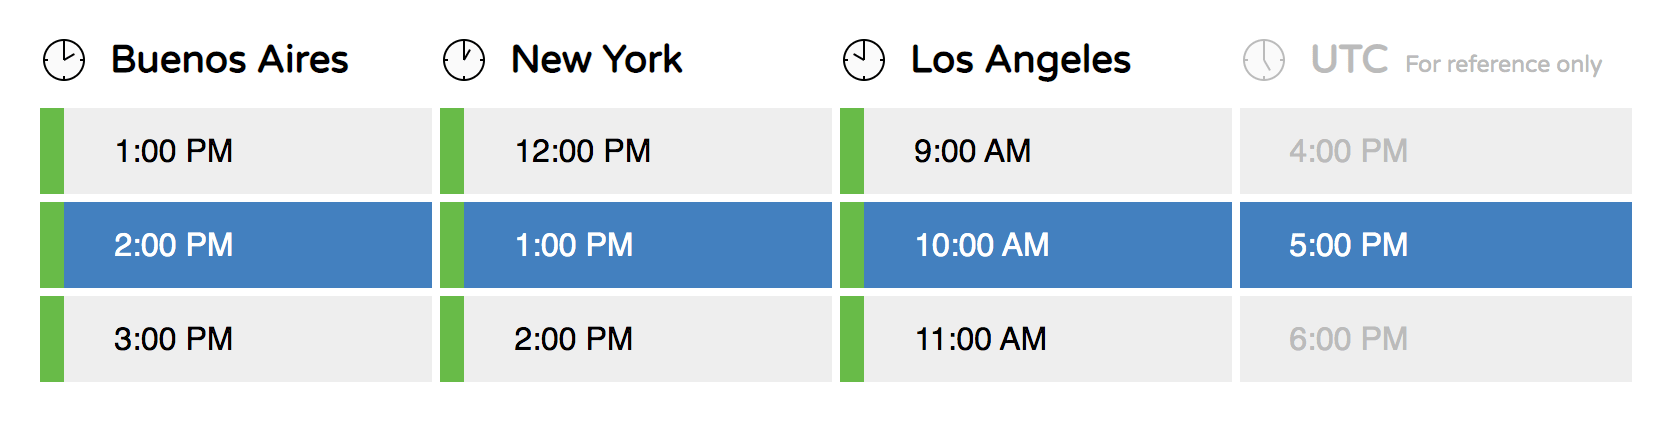 time difference between argentina and the USA